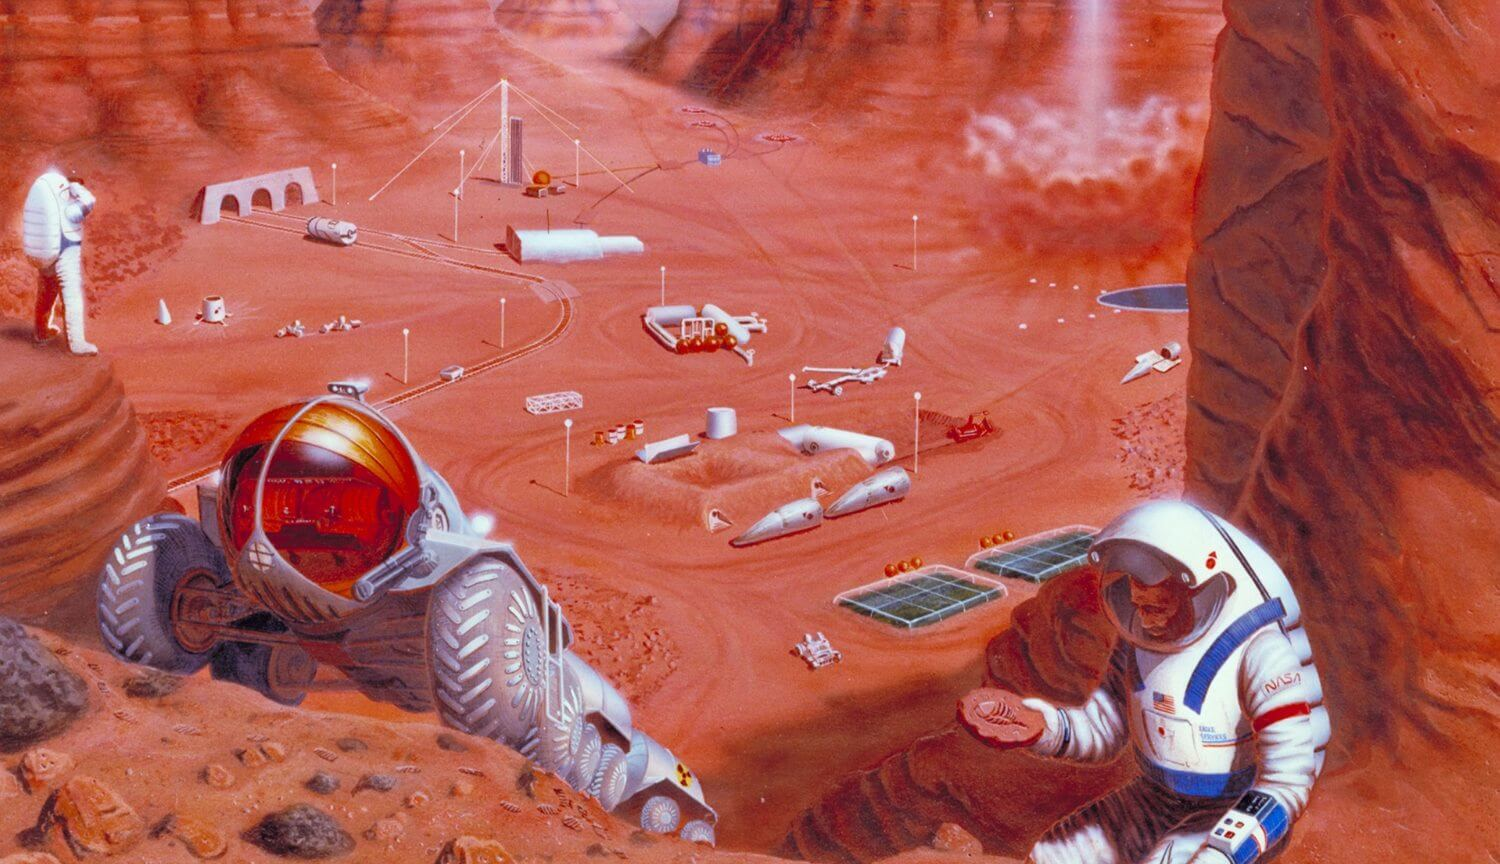 Can the microbes to do mining on Mars?